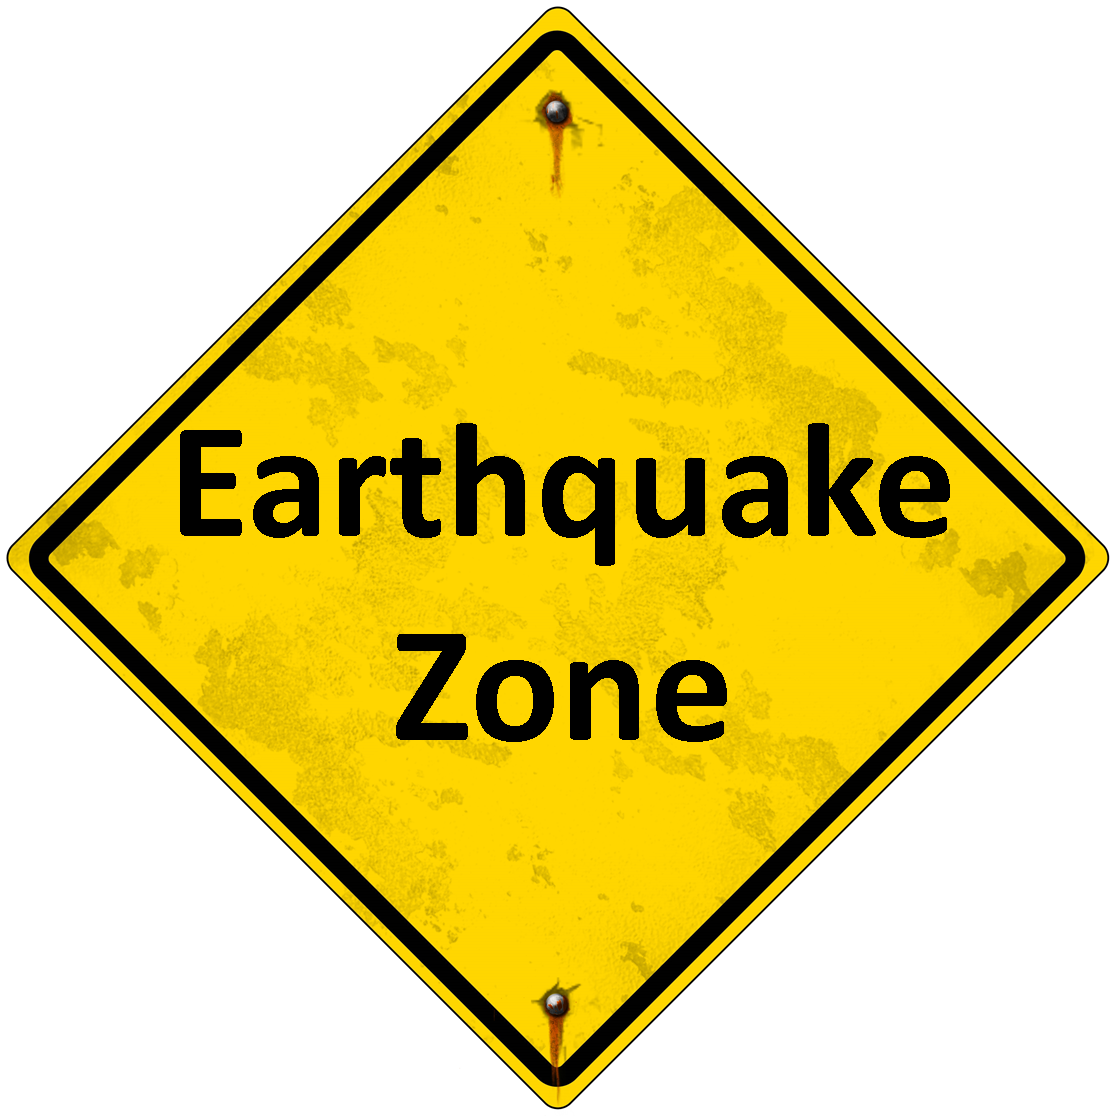 Earthquake clipart zone Homepage George's the schools news